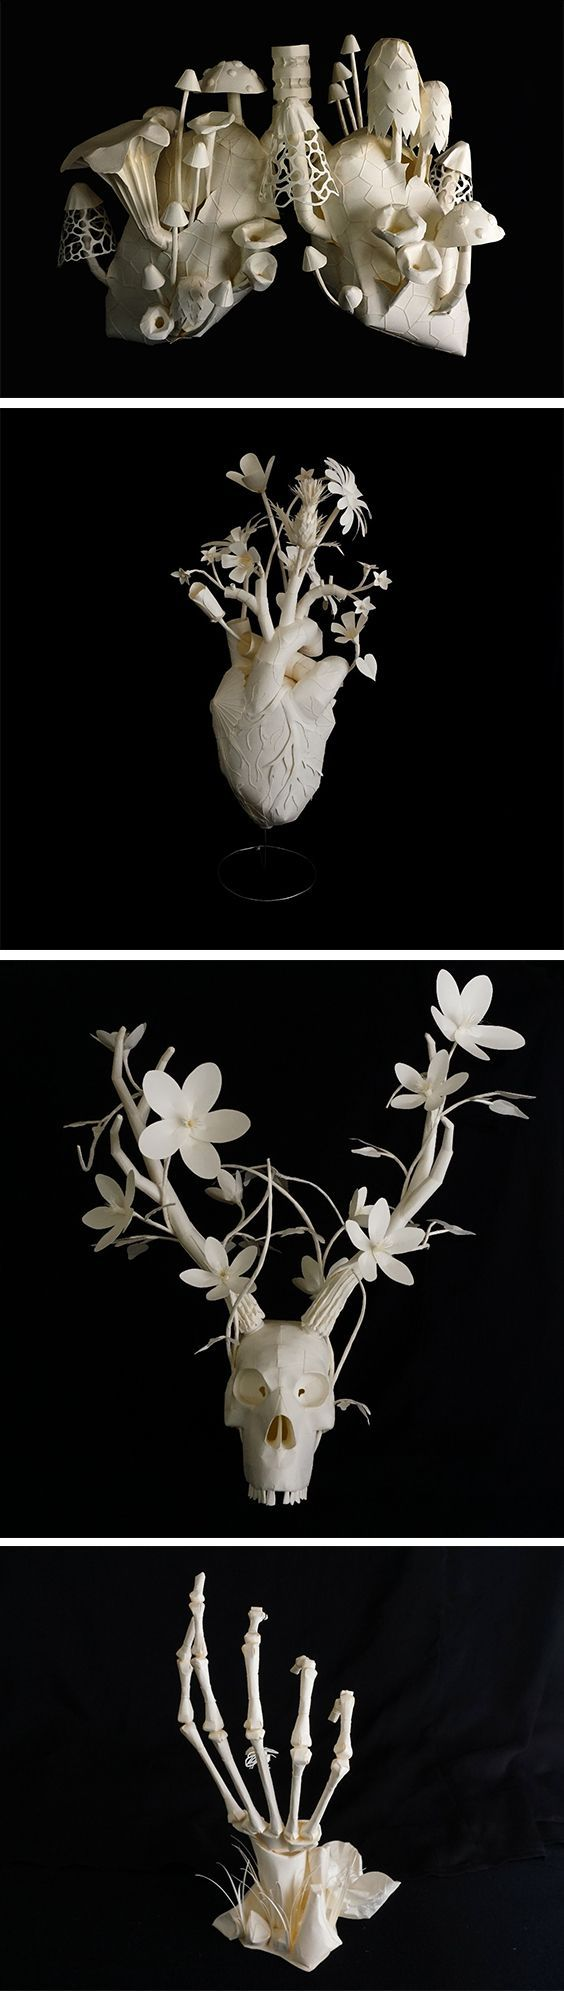 Eerily Beautiful and Macabre Paper Sculptures by Sinan Soykut: